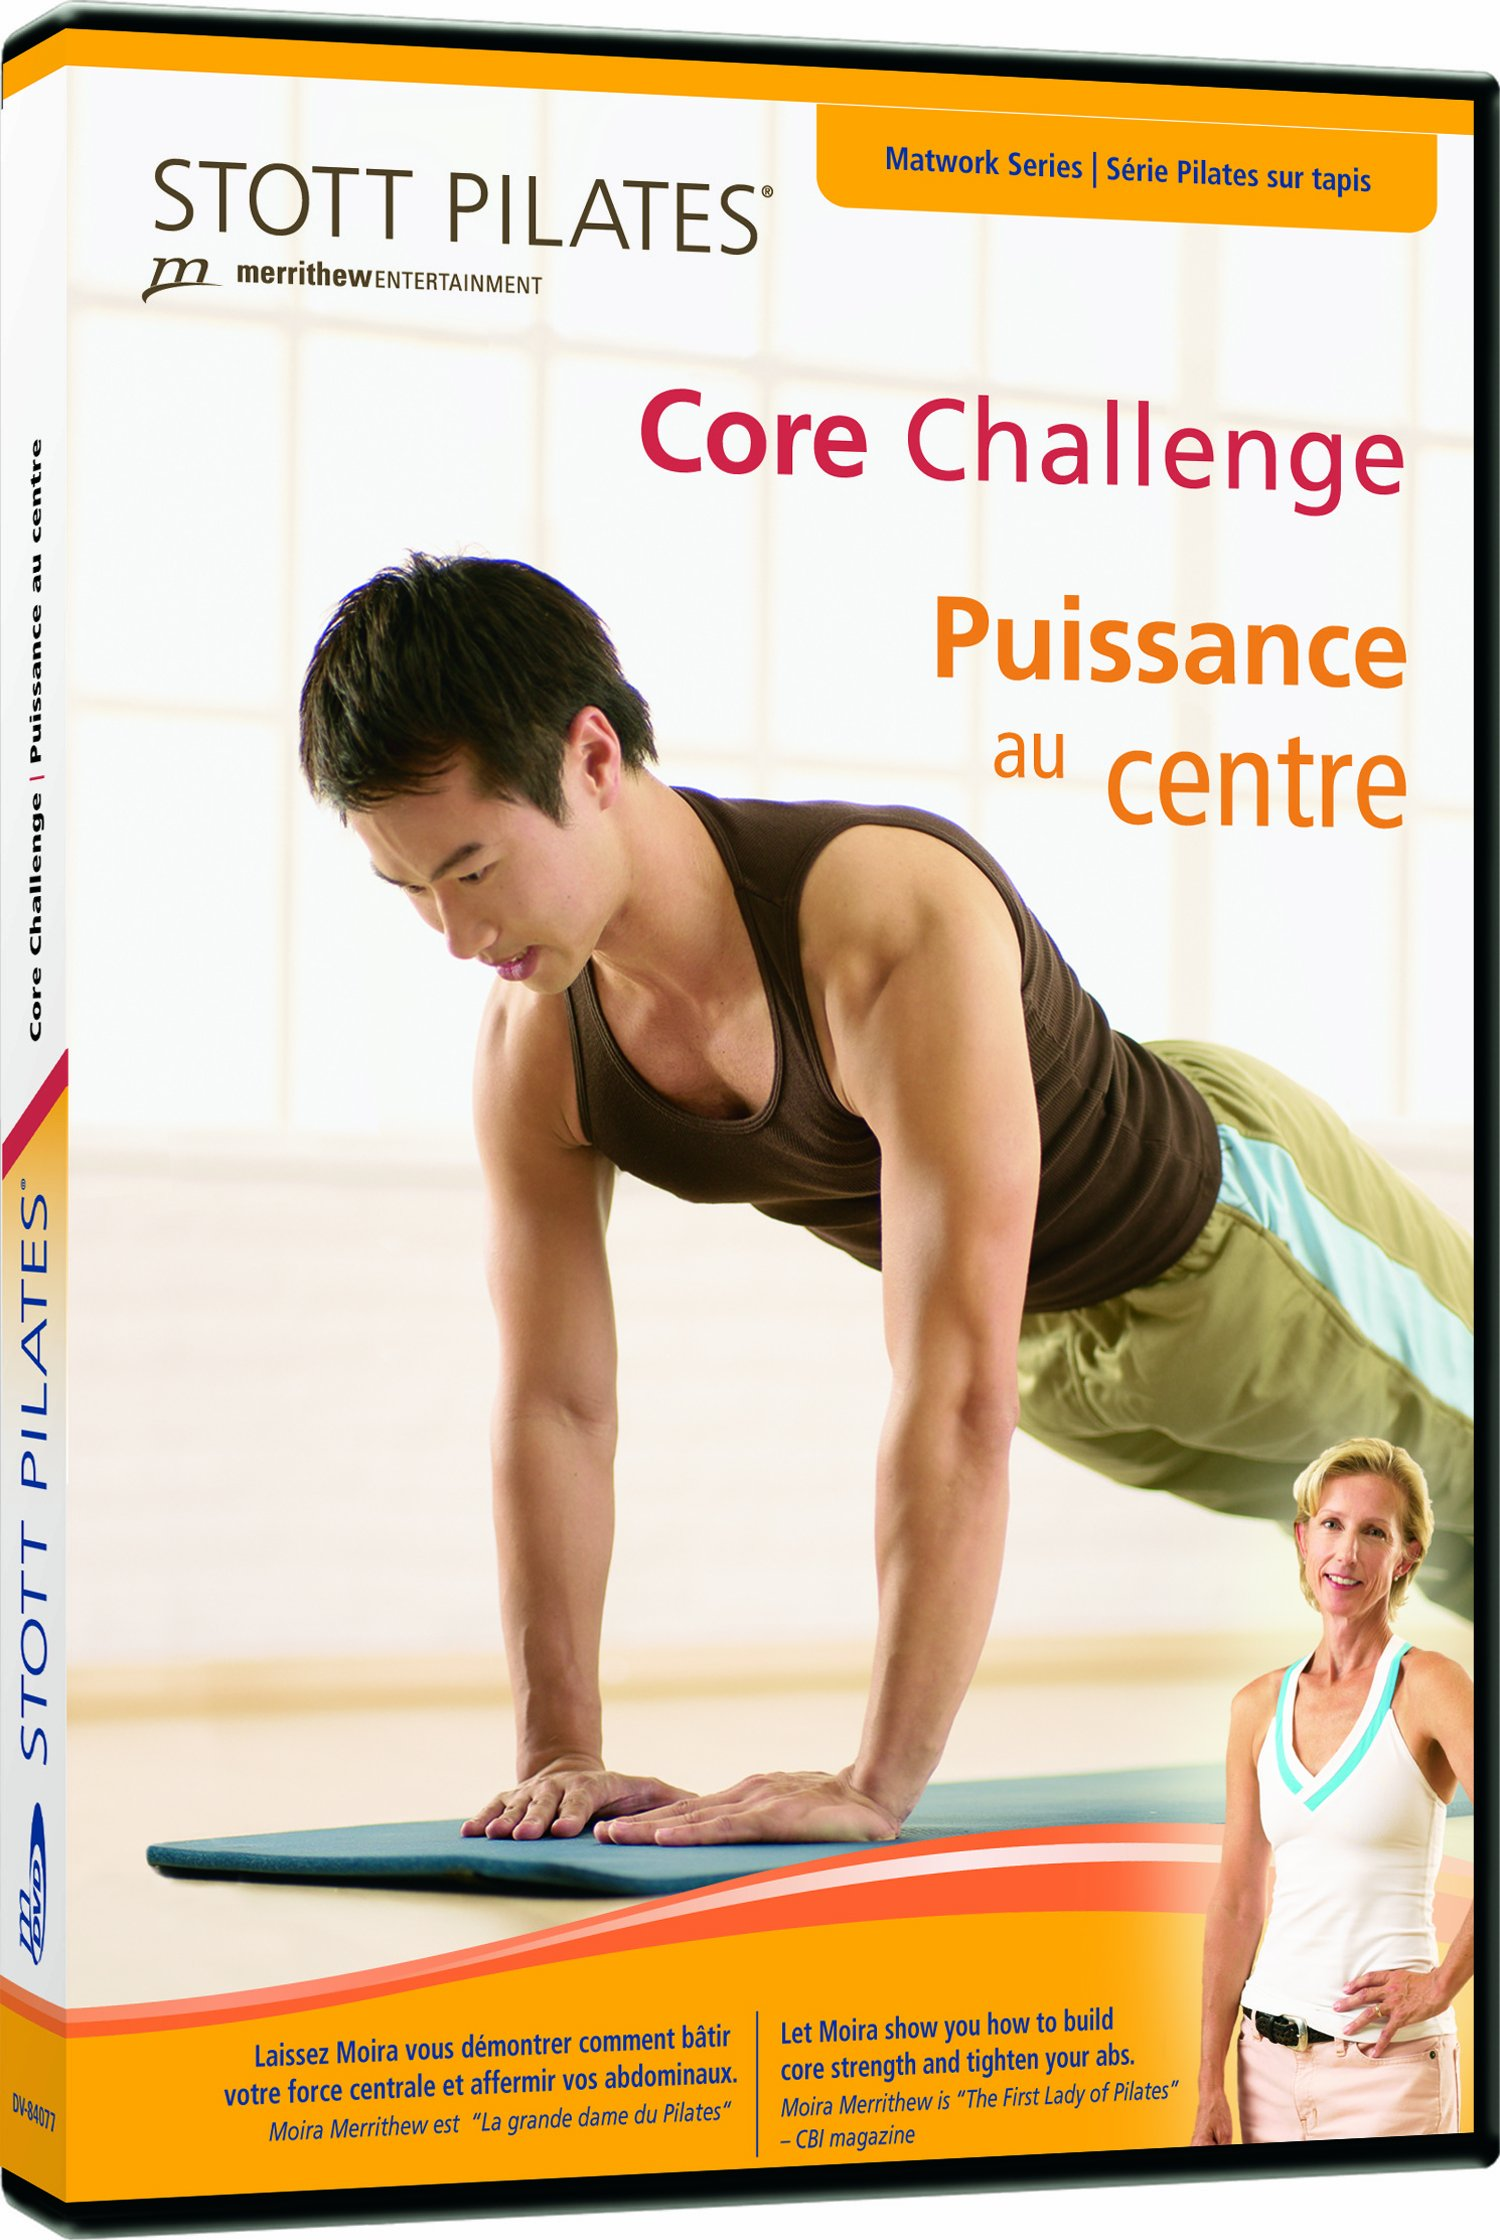 Core Challenge [English/ French Packaging] (Dubbed)